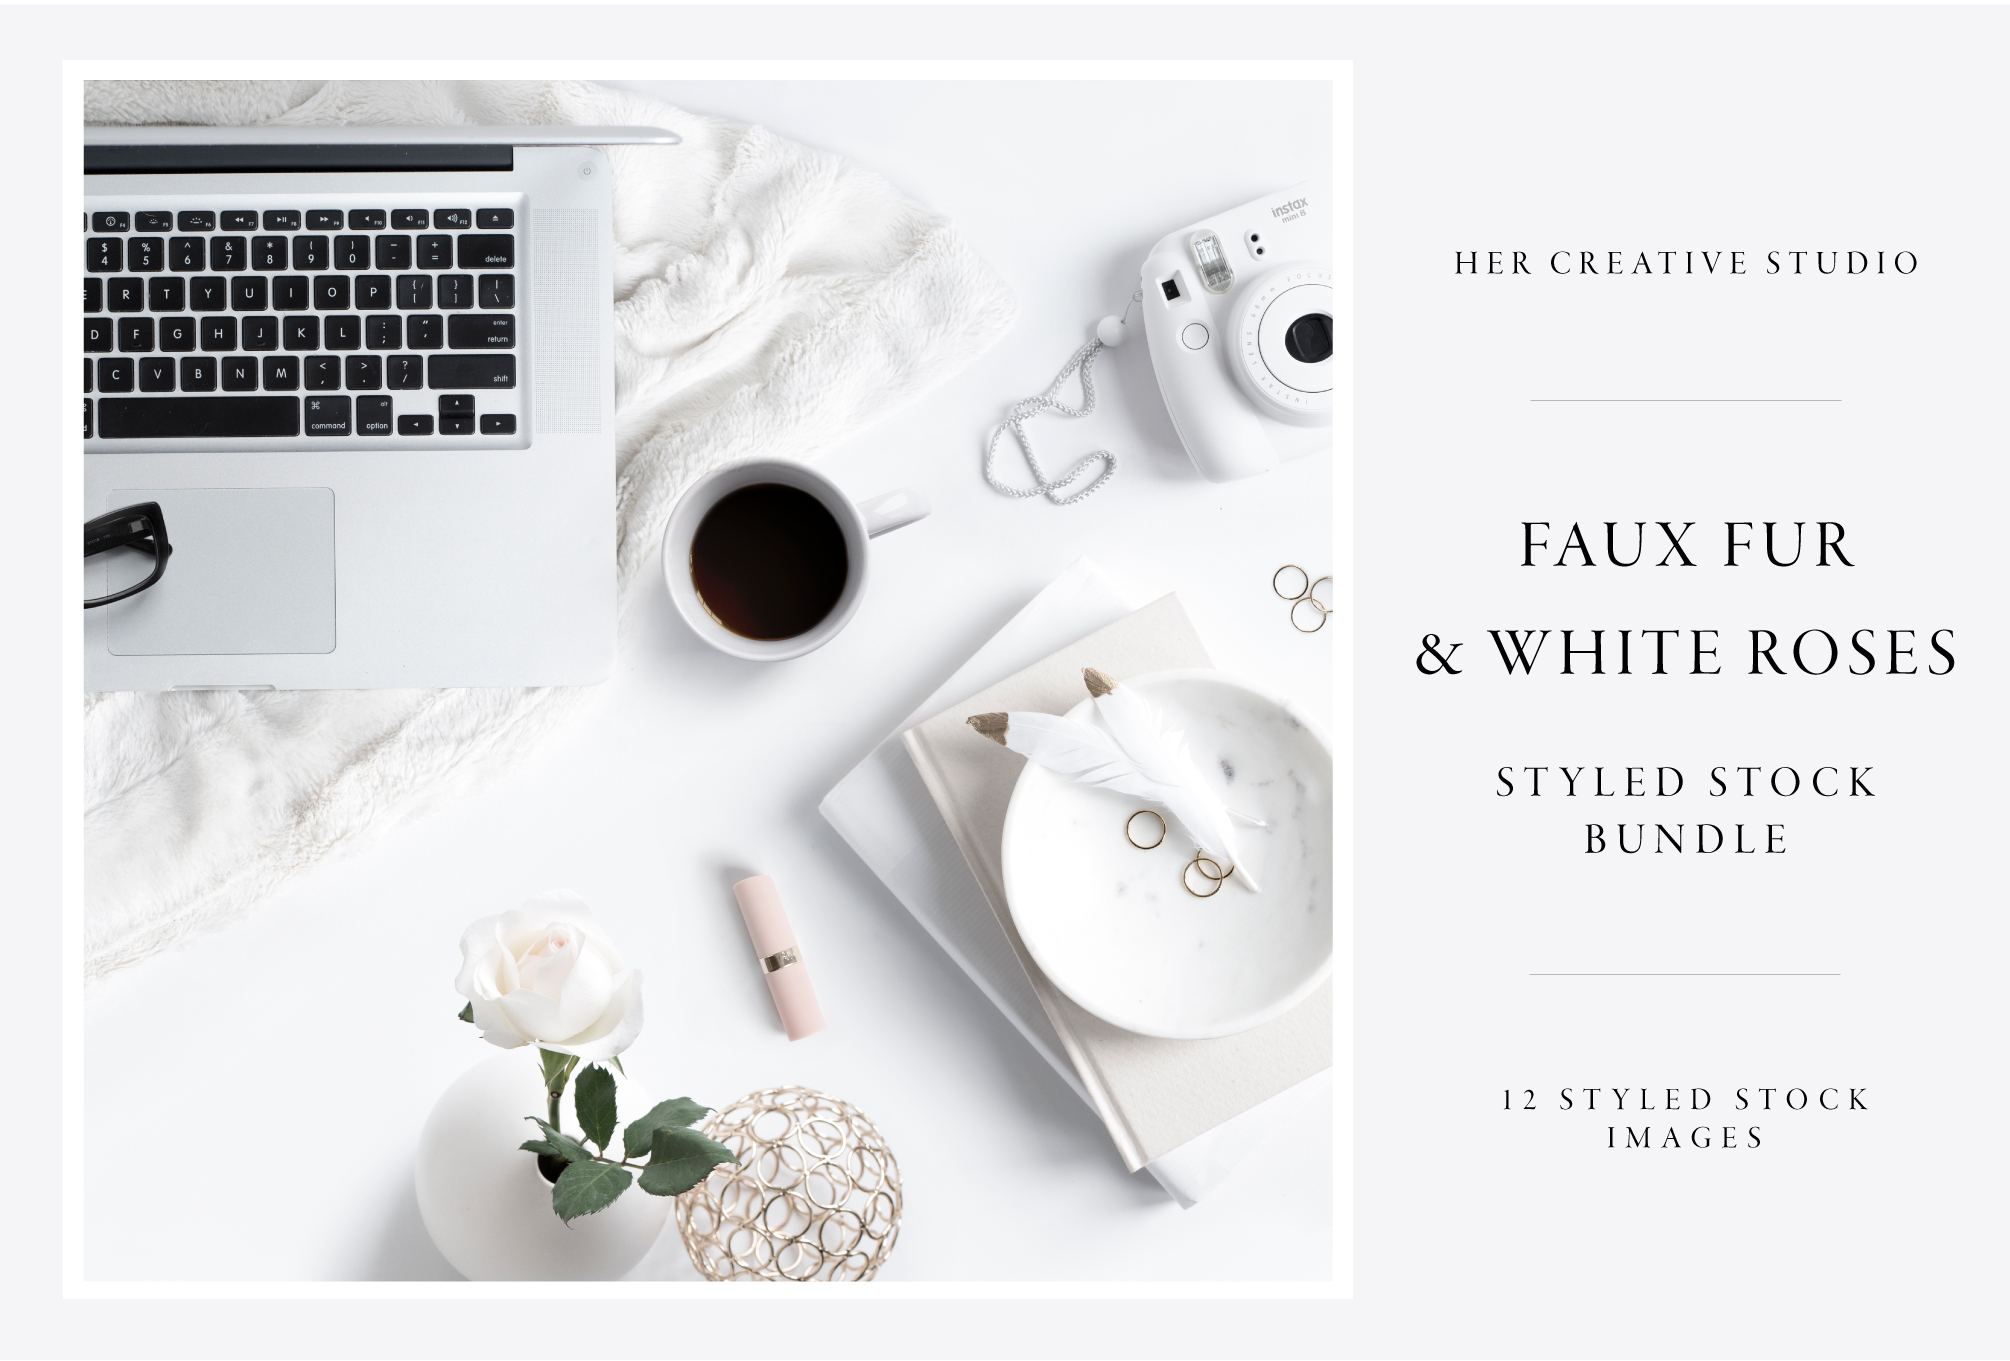 Styled Stock Imagery By Her Creative Studio